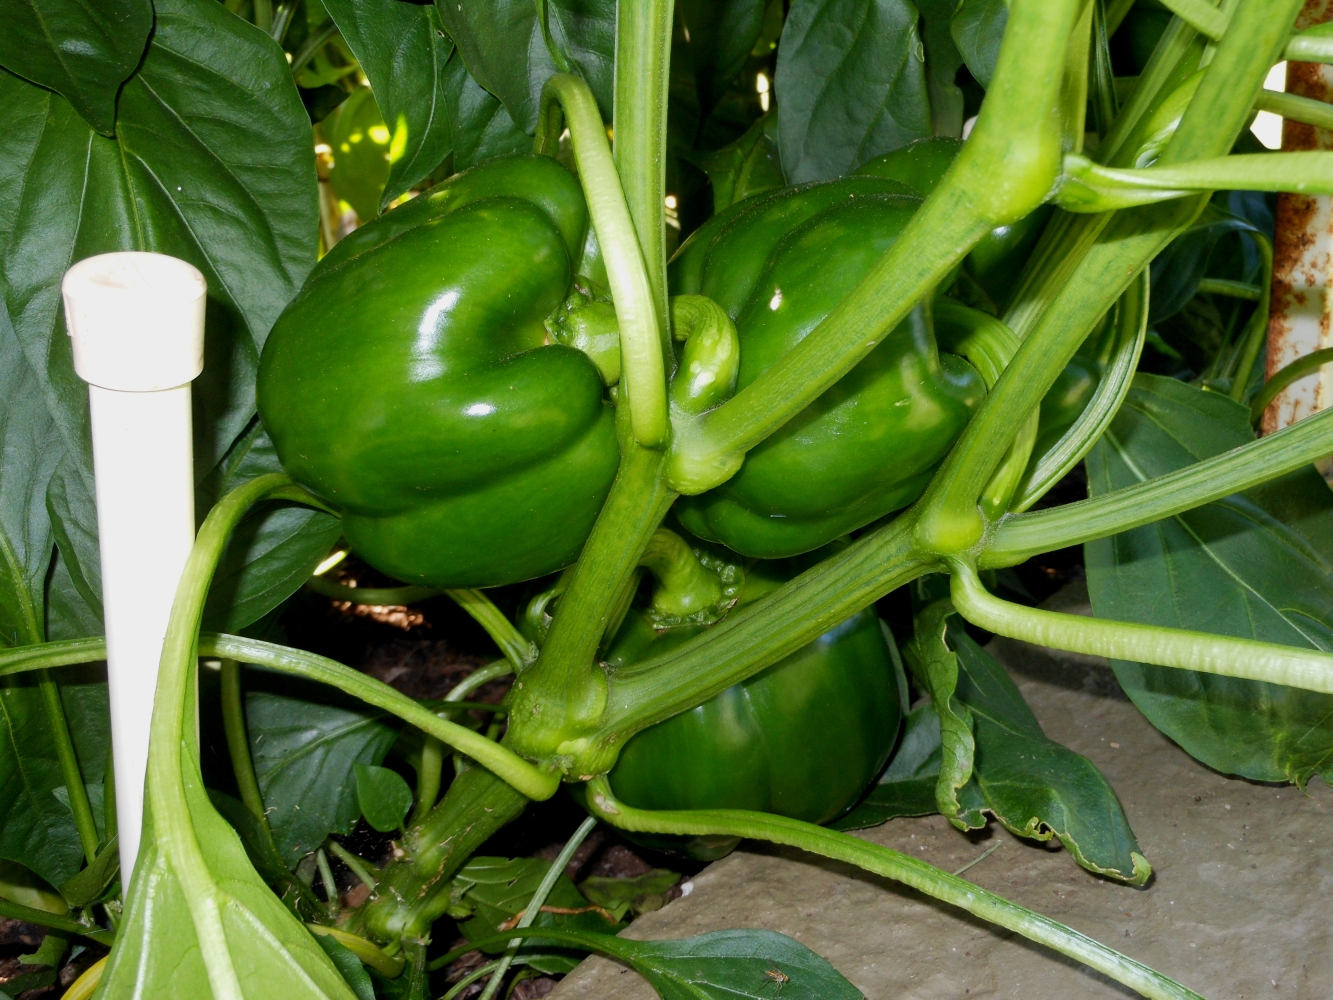 06-15-14_Bell_Pepper_Plants_04